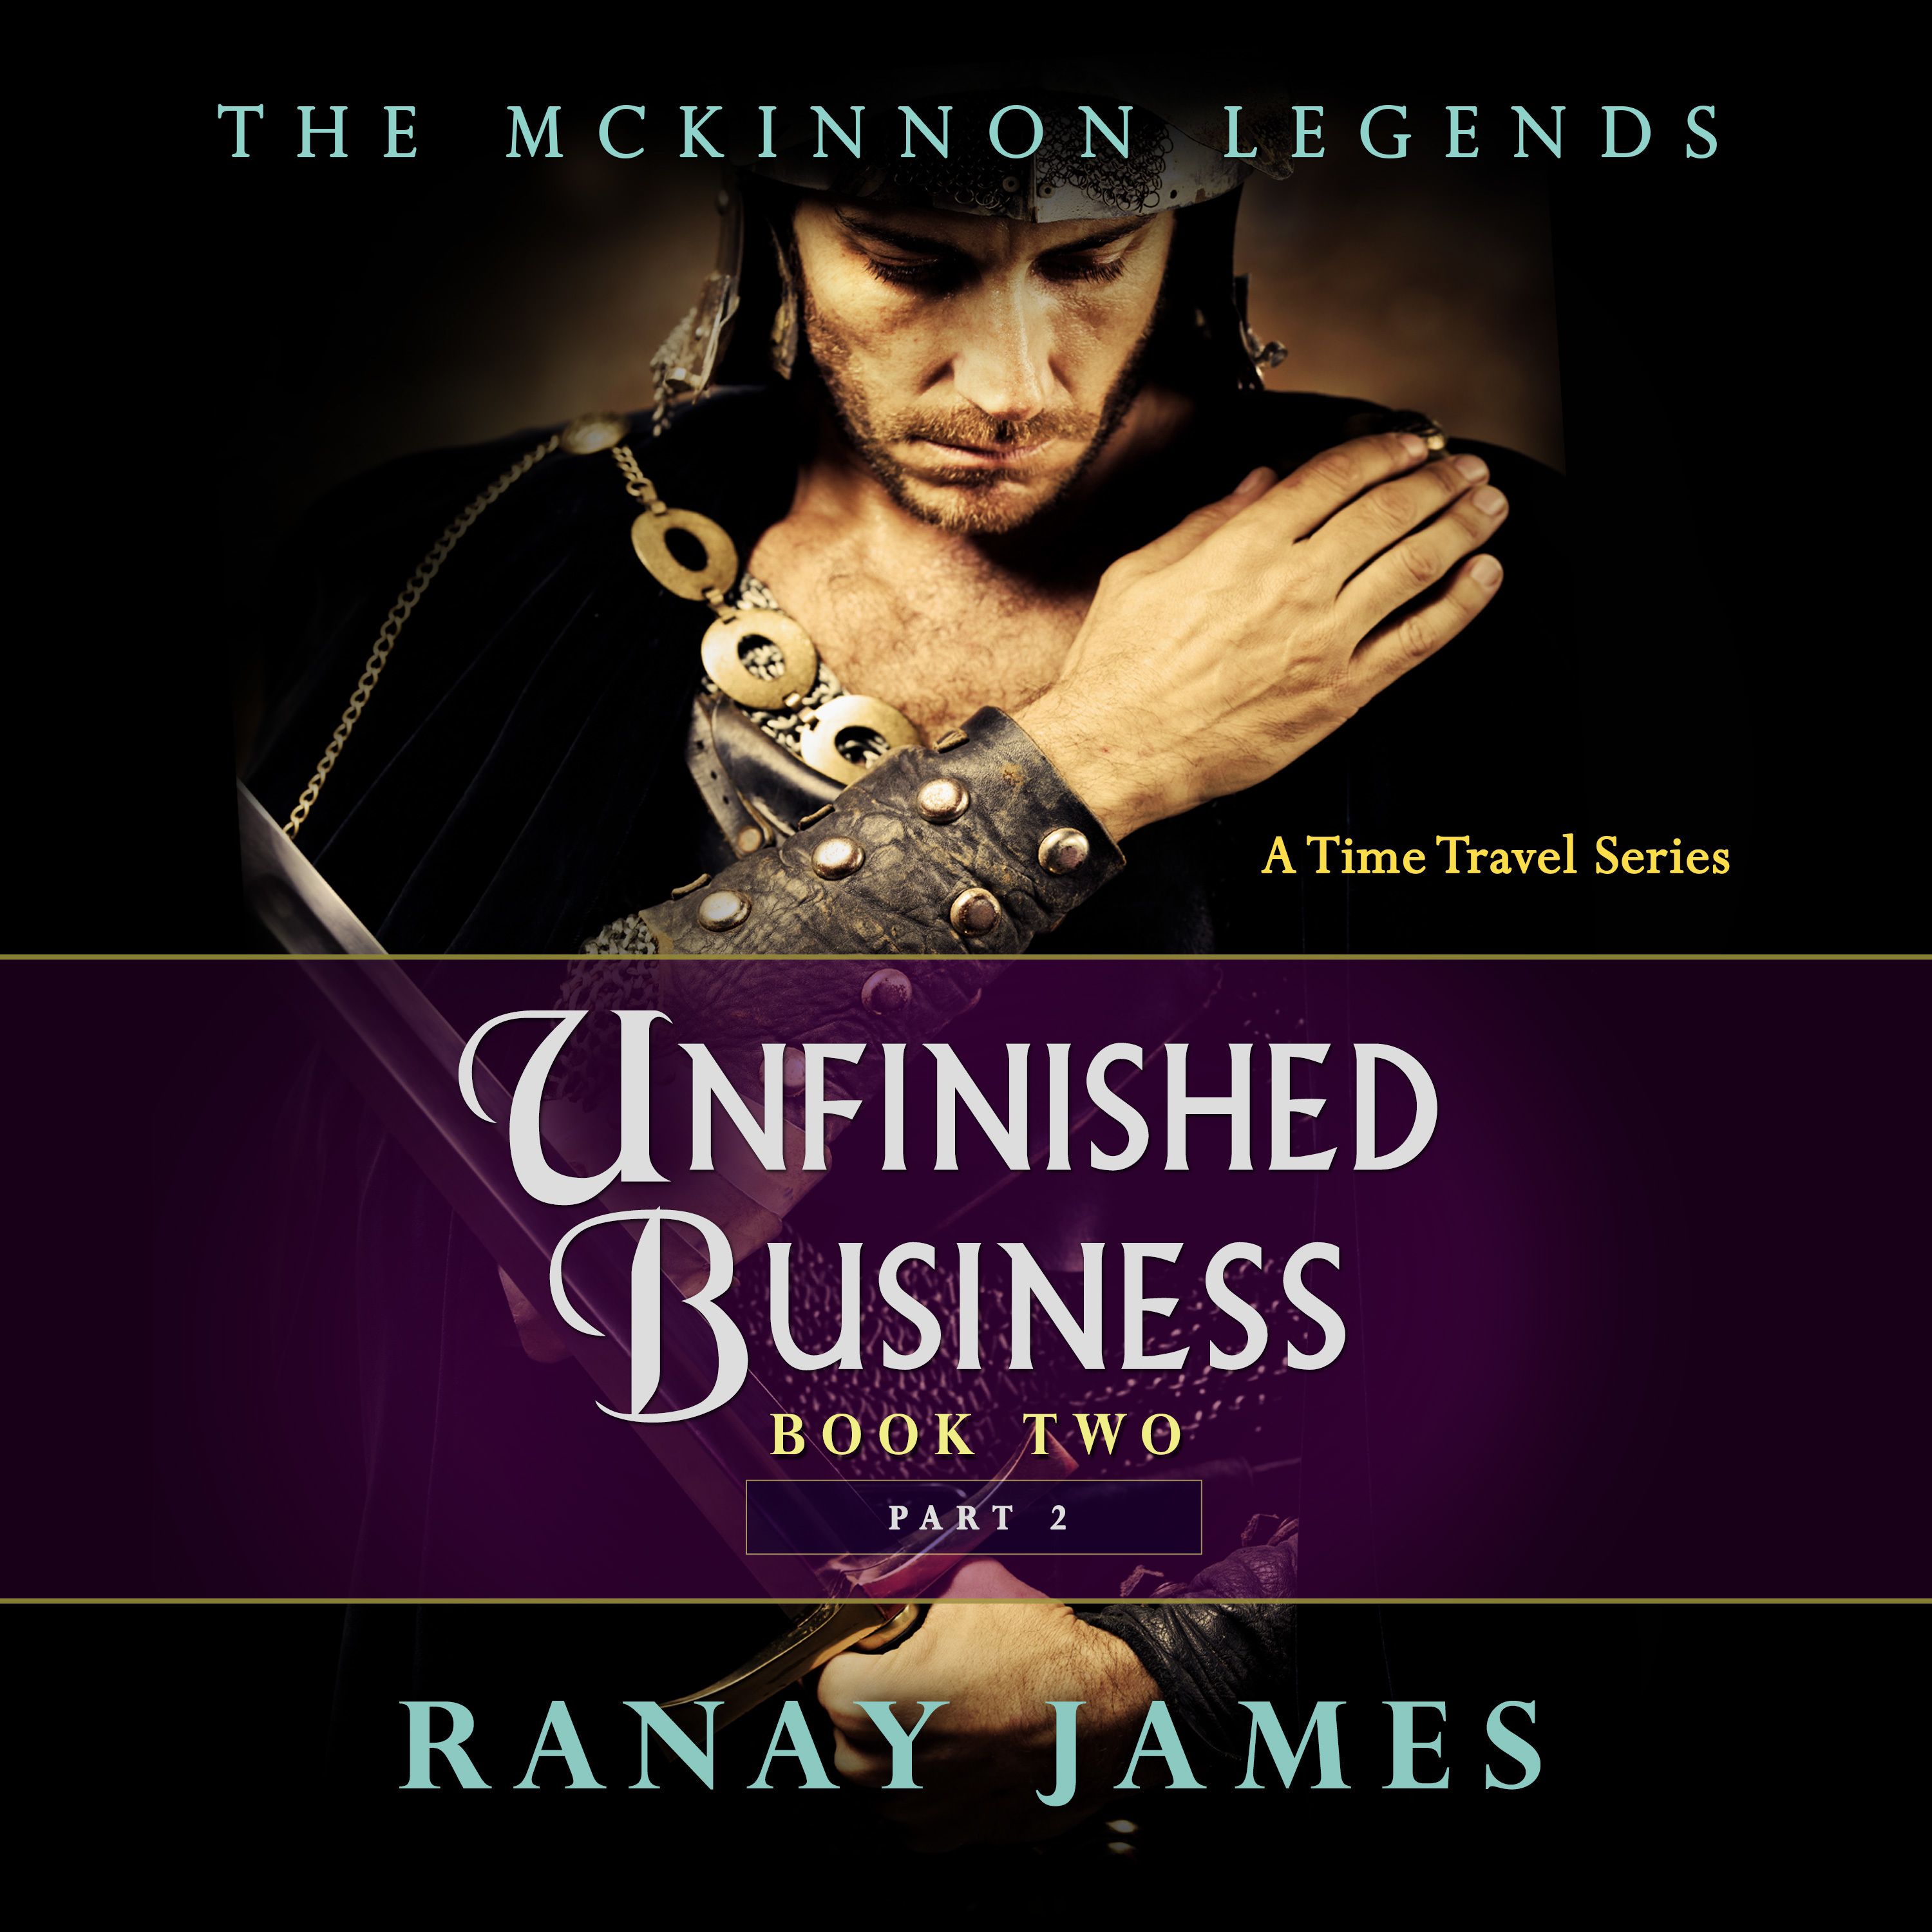 Printable Unfinished Business: Book 2, Part 2: The McKinnon Legends: A Time Travel Series Audiobook Cover Art